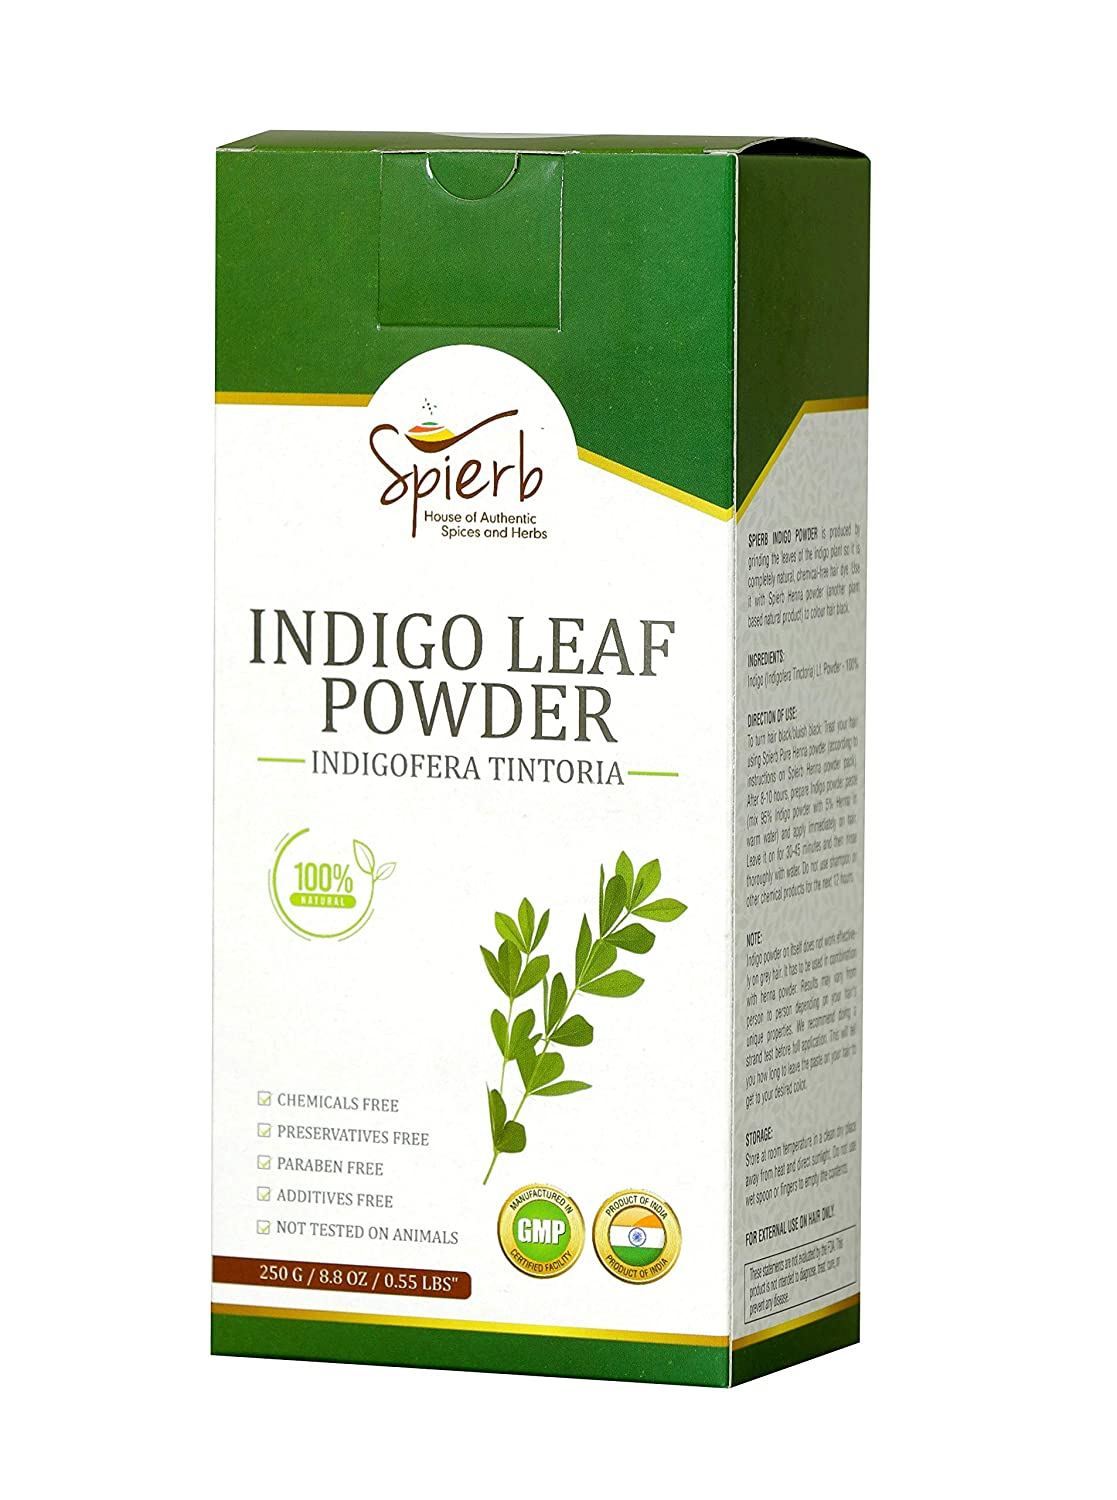 Spierb Indigo Powder for Hair - Use with Henna Powder to Color Hair Black Natural Indigo Powder Hair Dye – 100% Pure Indigofera tinctoria Leaf Powder 250g